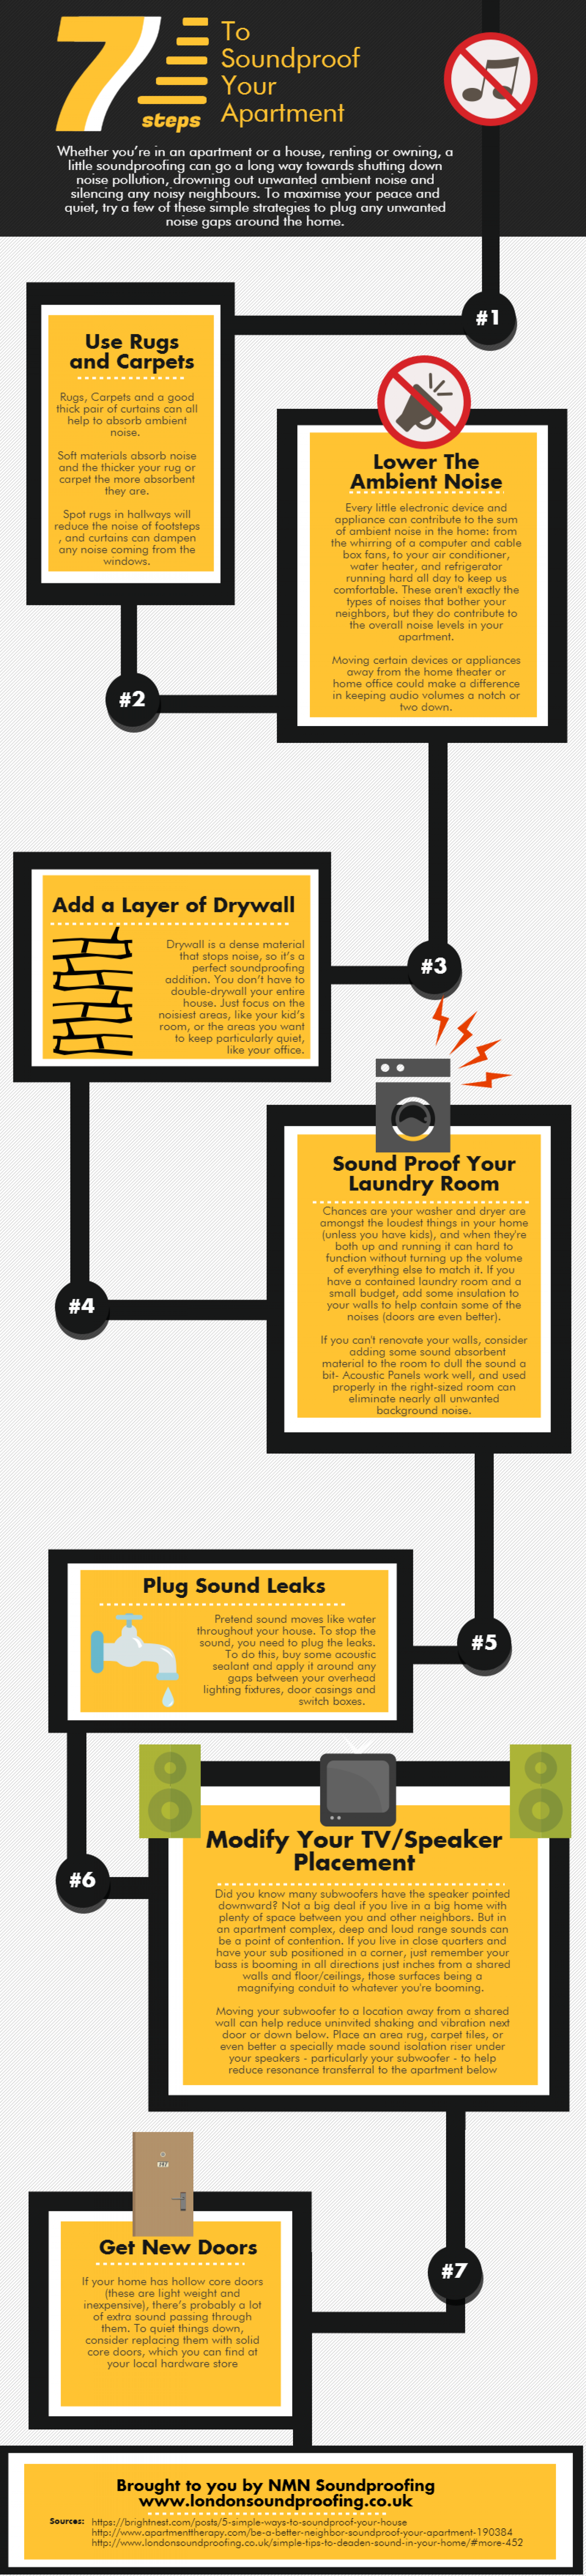 steps to soundproof your apartment infographic